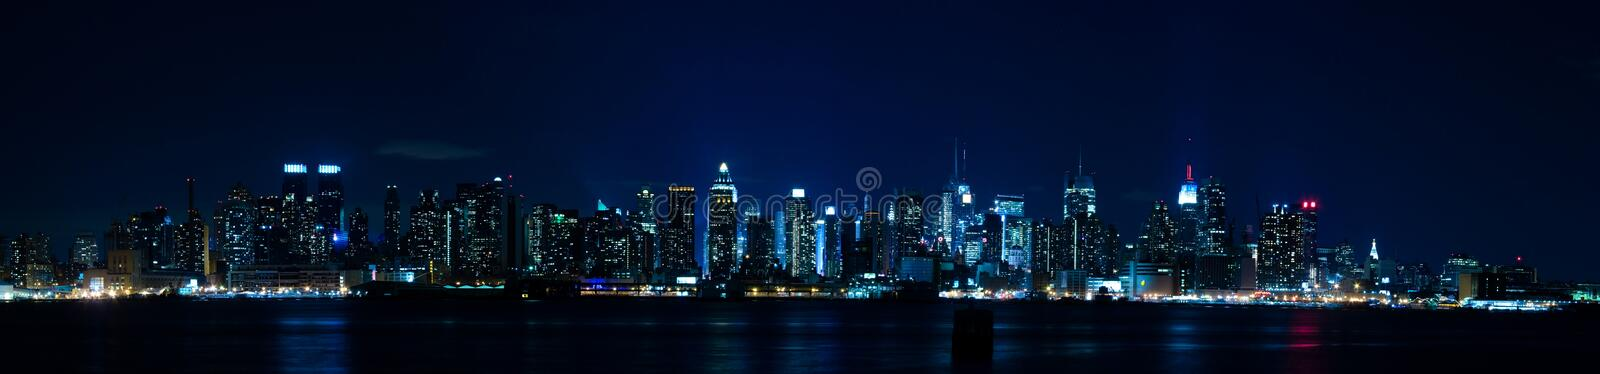 Panorama de New York - skyline de Manhattan fotografia de stock